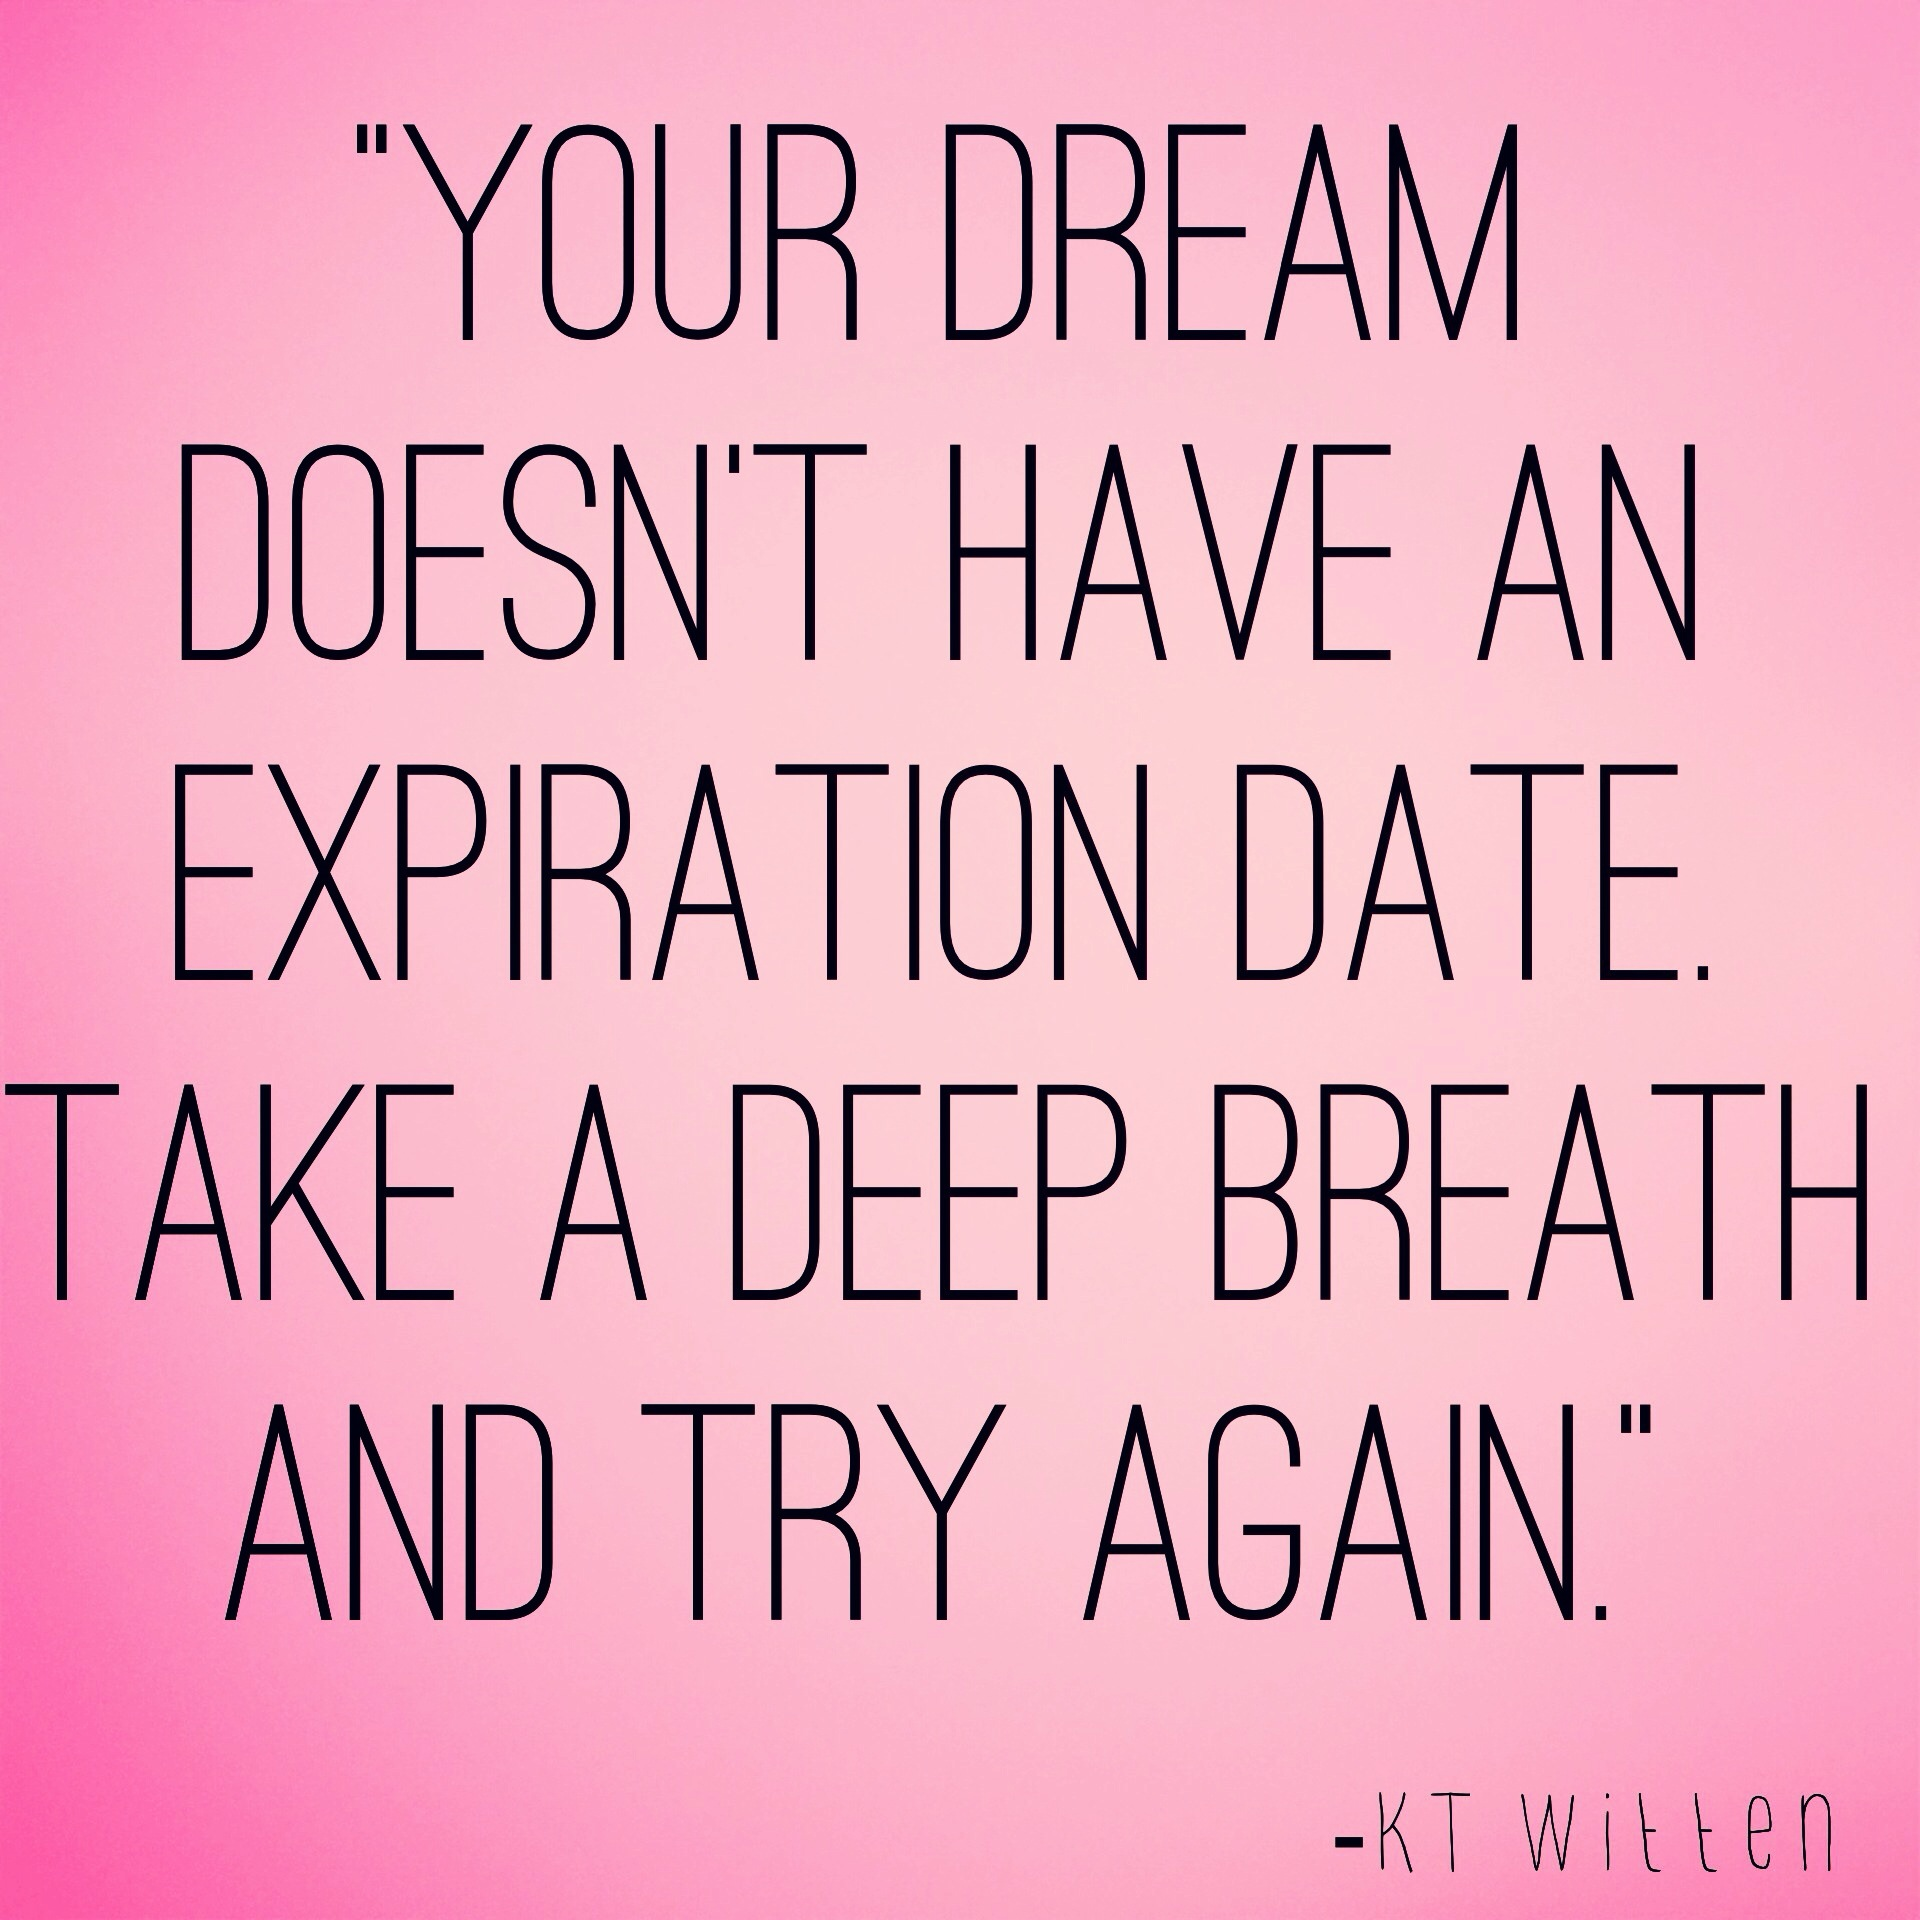 Life Quotes Julie Flygare Top 13 Inspirational Quotes Of 2014 1 No Expiration Date